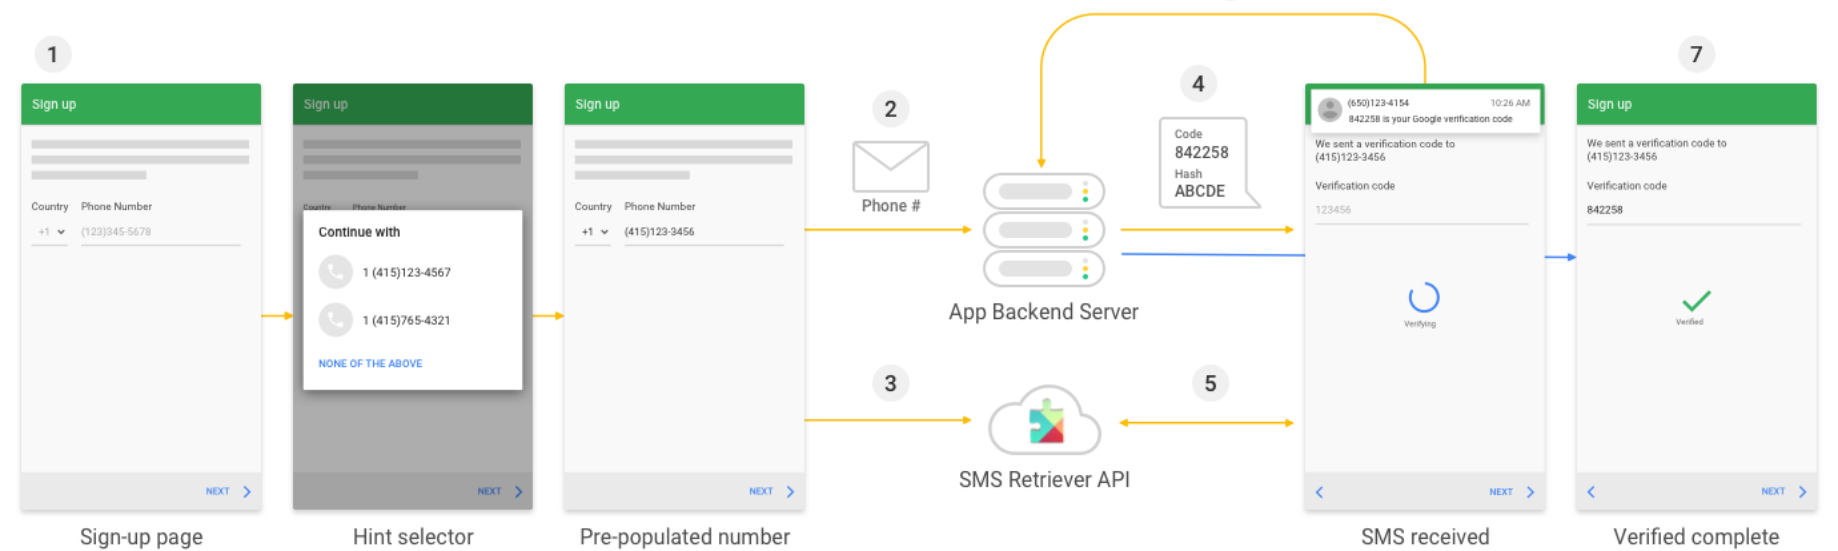 Secure Android OTP & Account Verification using the SMS